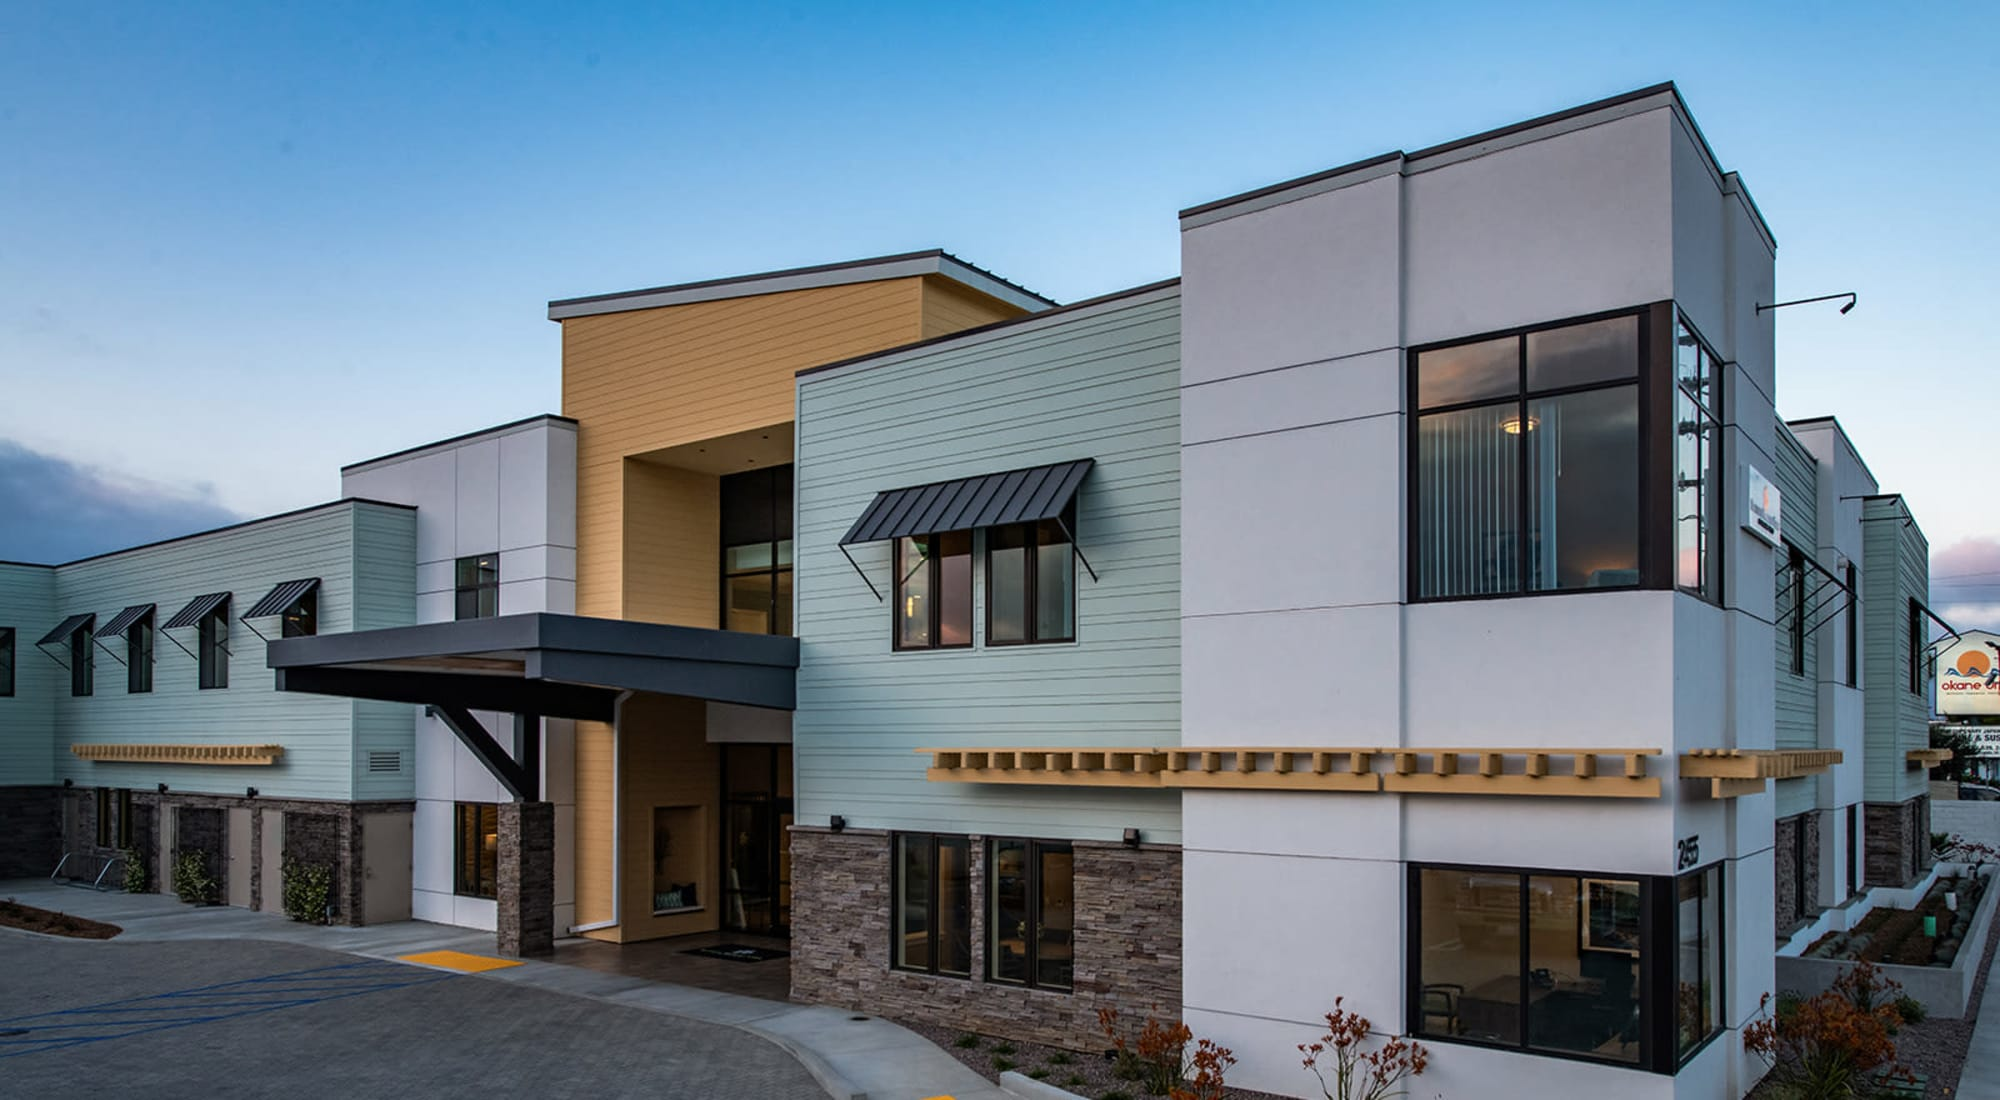 Daytime exterior view of Seasons Memory Care at Rolling Hills in Torrance, California